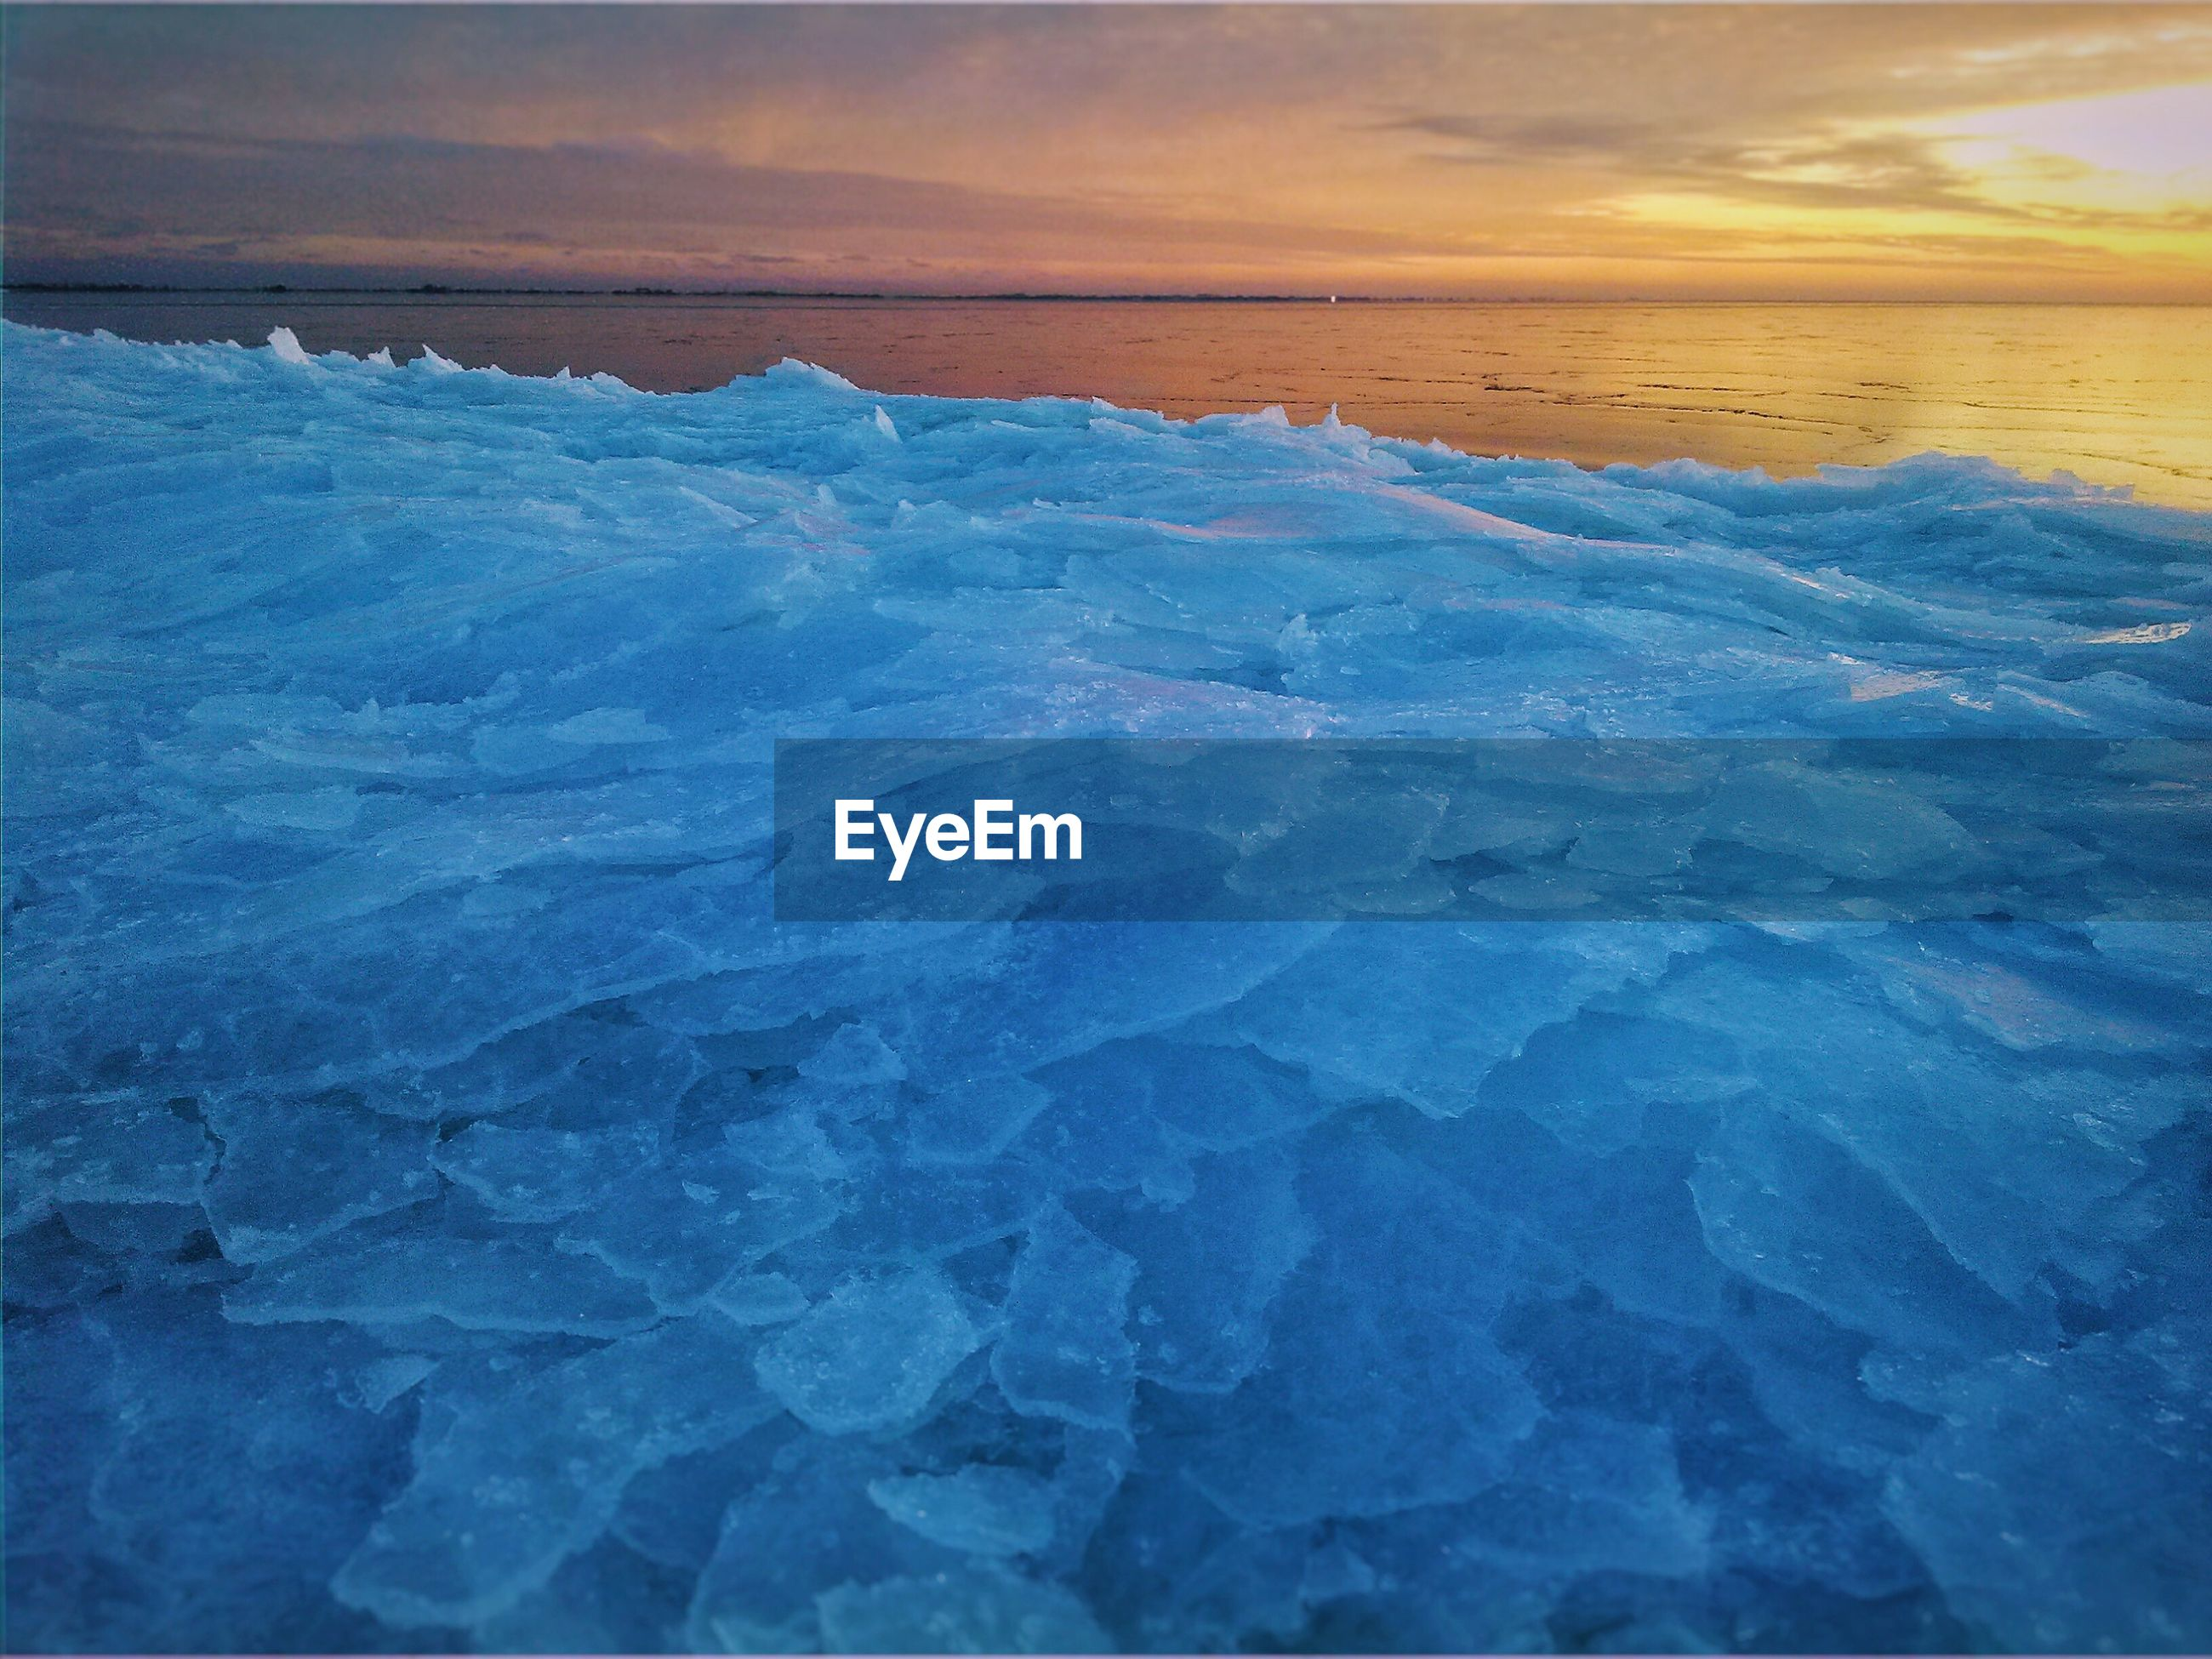 Ice crystals by sea during sunset